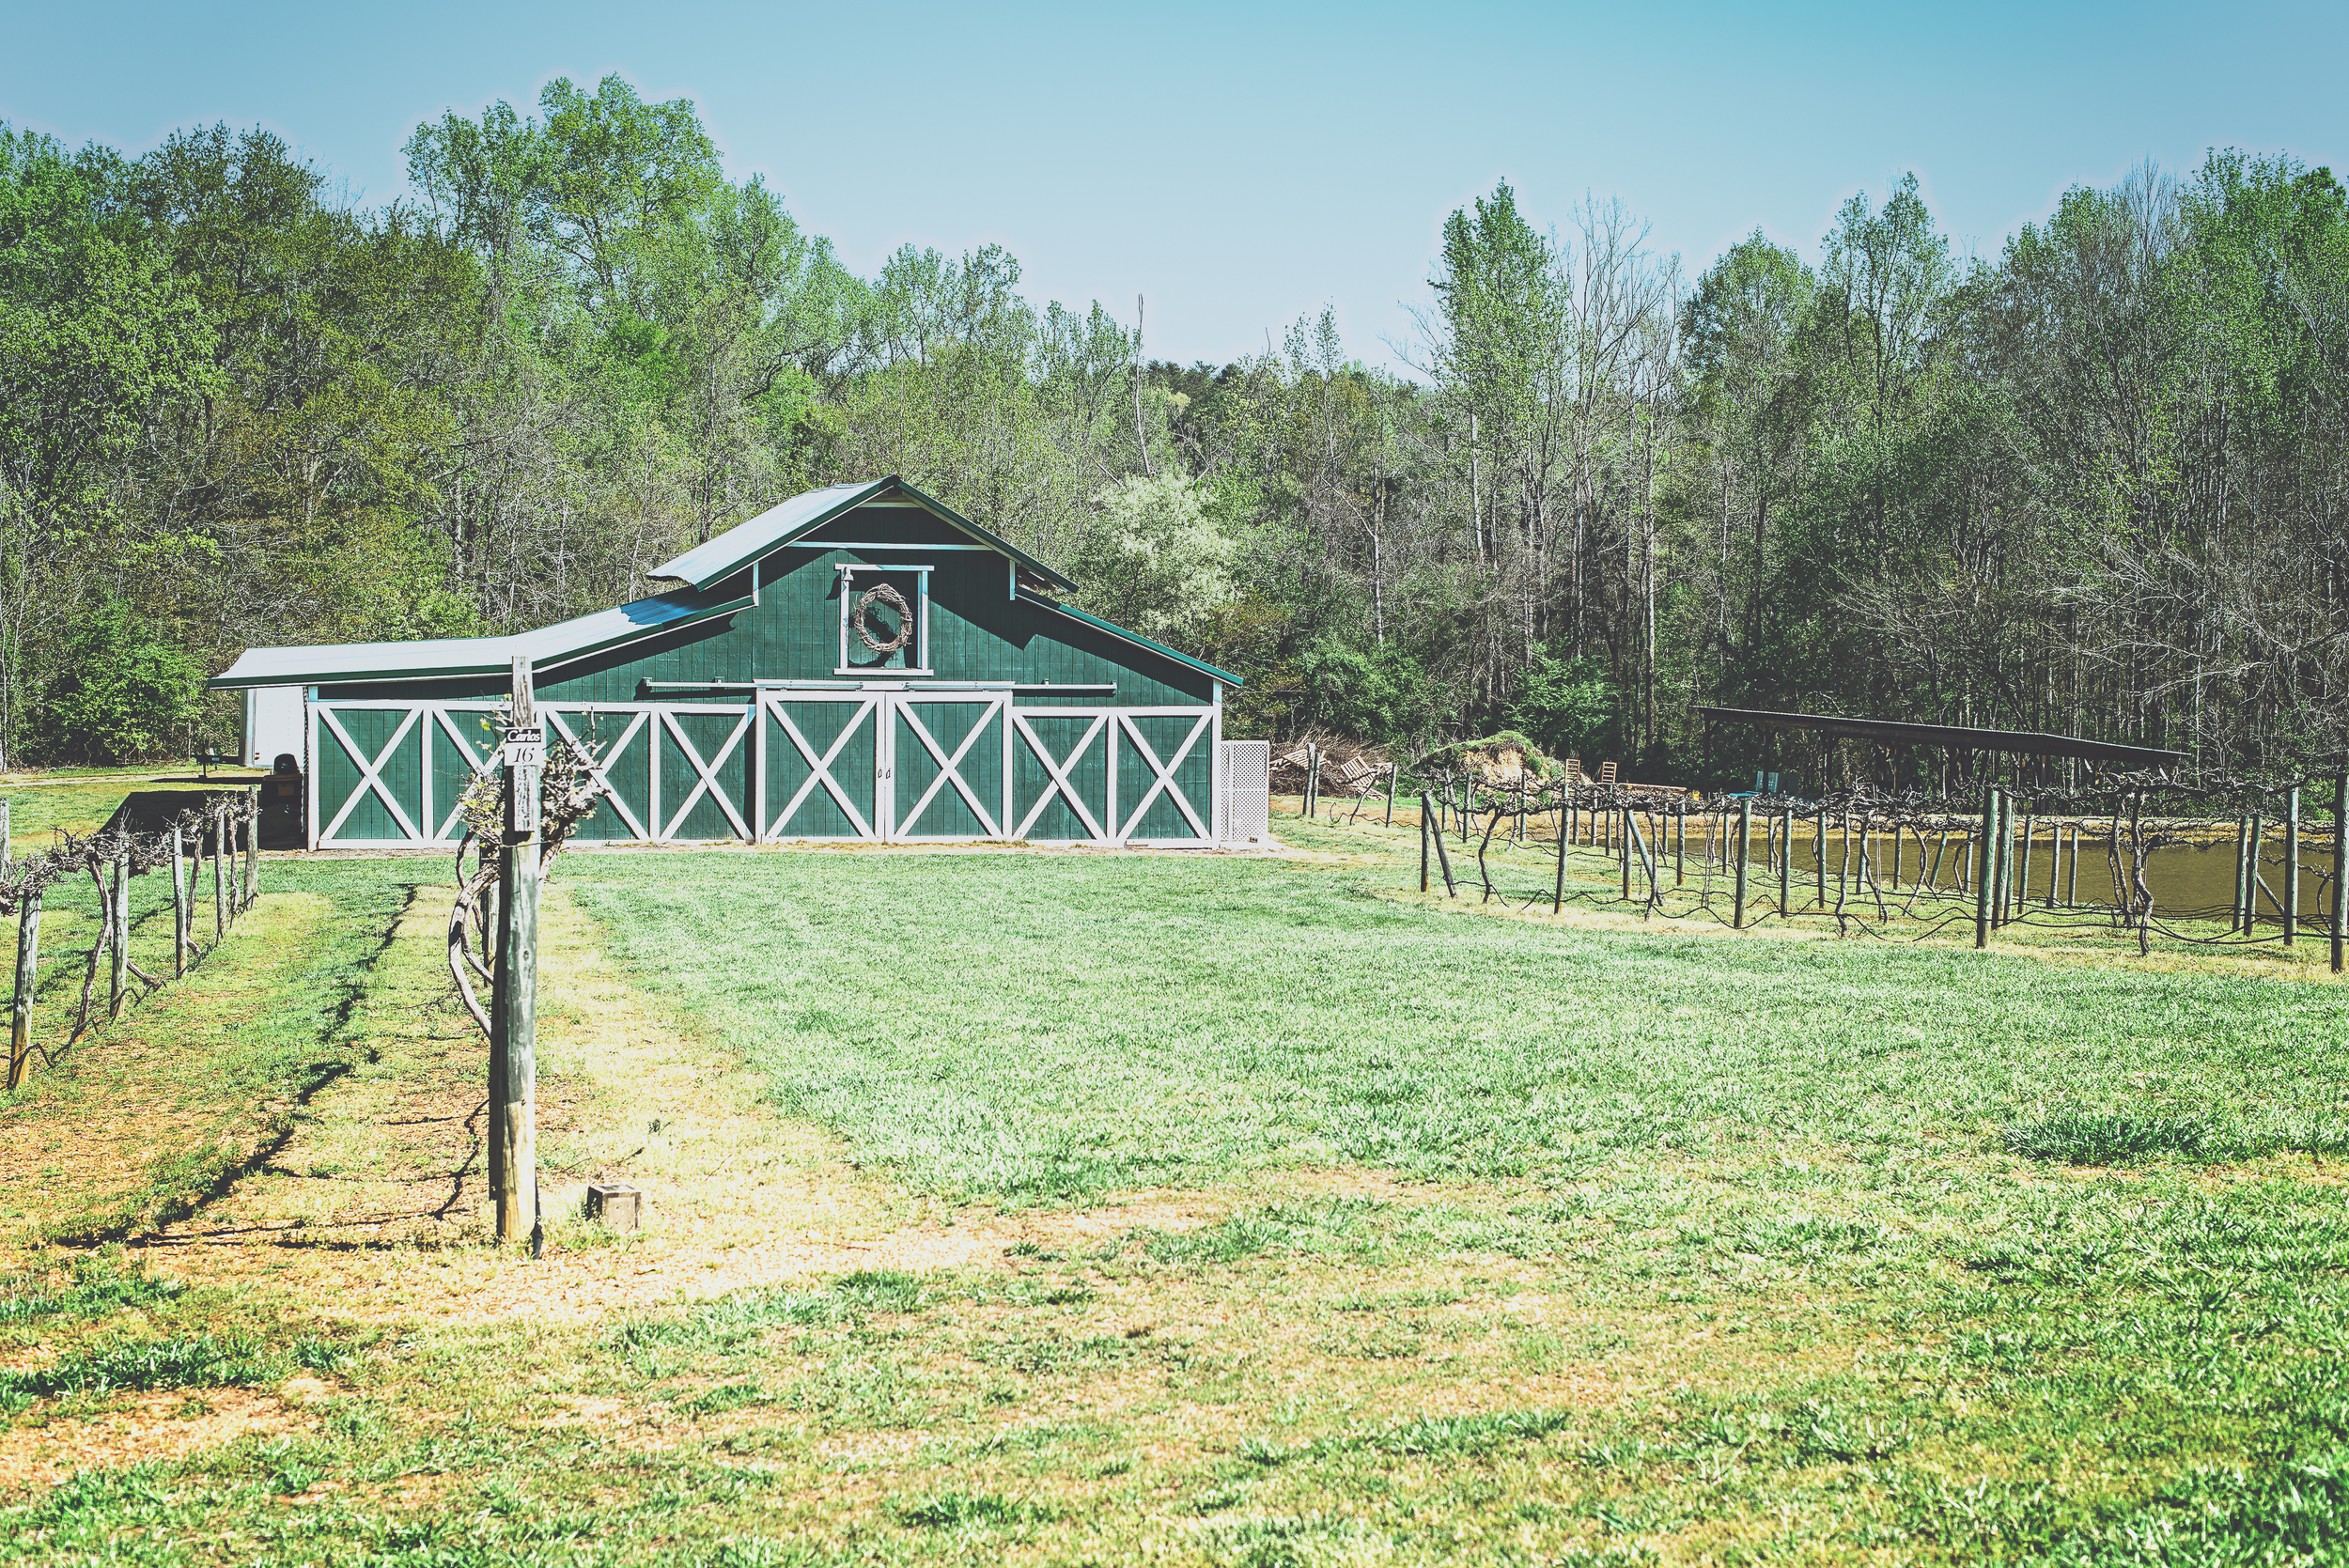 The beautiful barn at Rocky River Vineyards, Midland, NC on April 6, 2016